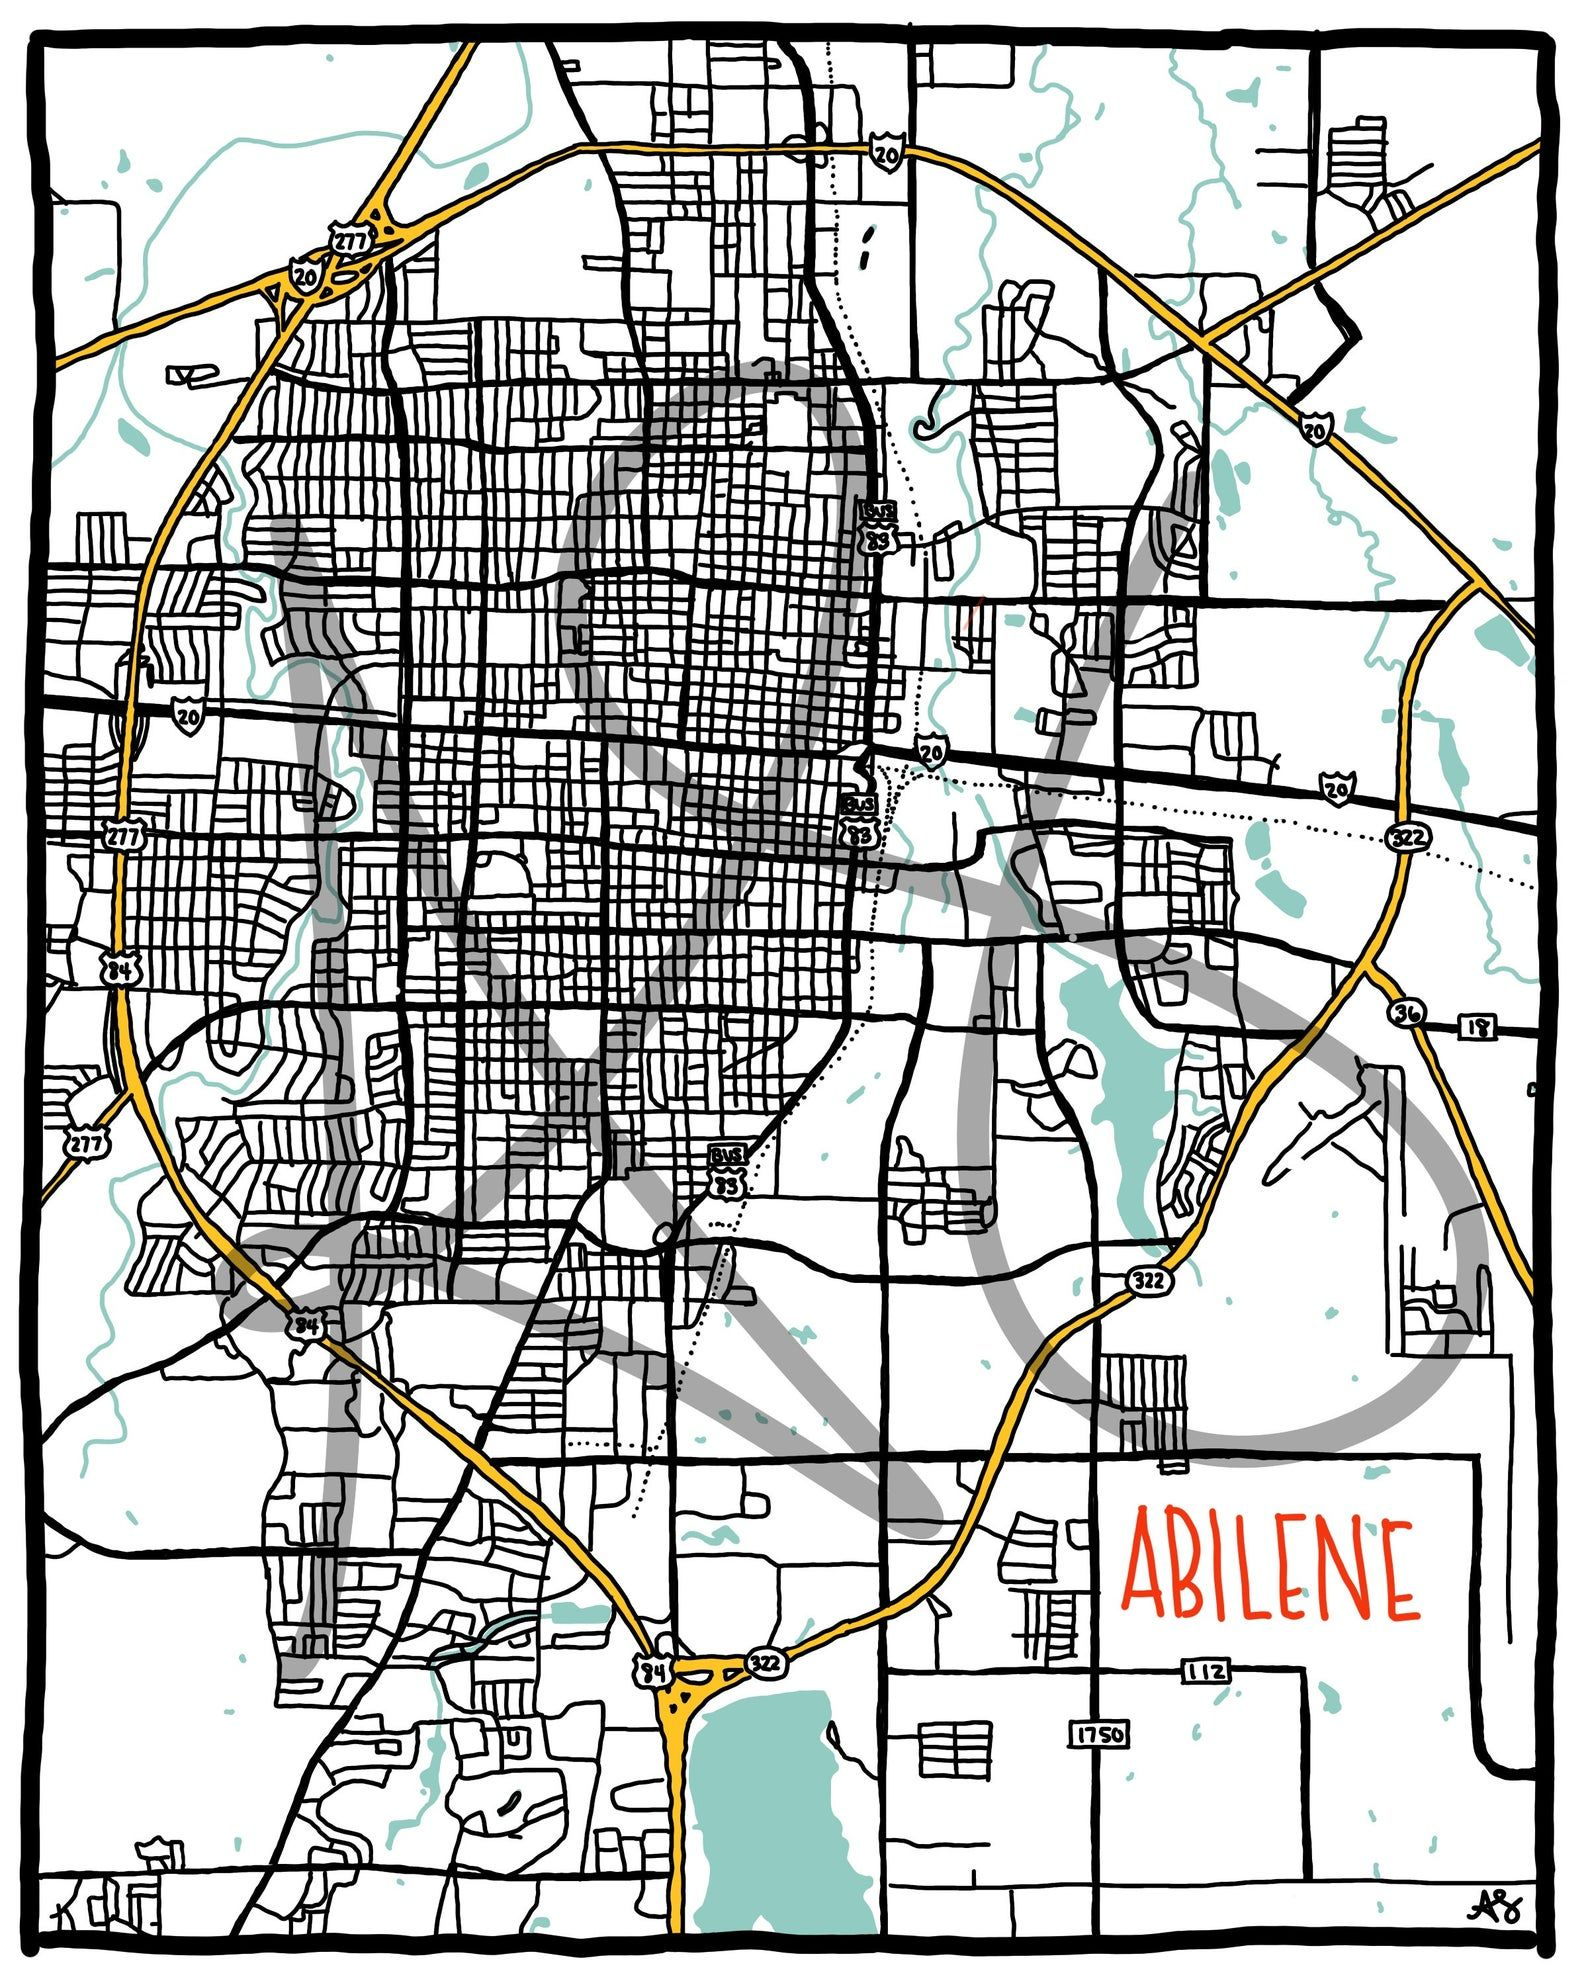 Abilene Texas City Map Digital Print Instant Download Etsy In 2020 City Map Artwork Texas Map With Cities City Map Art